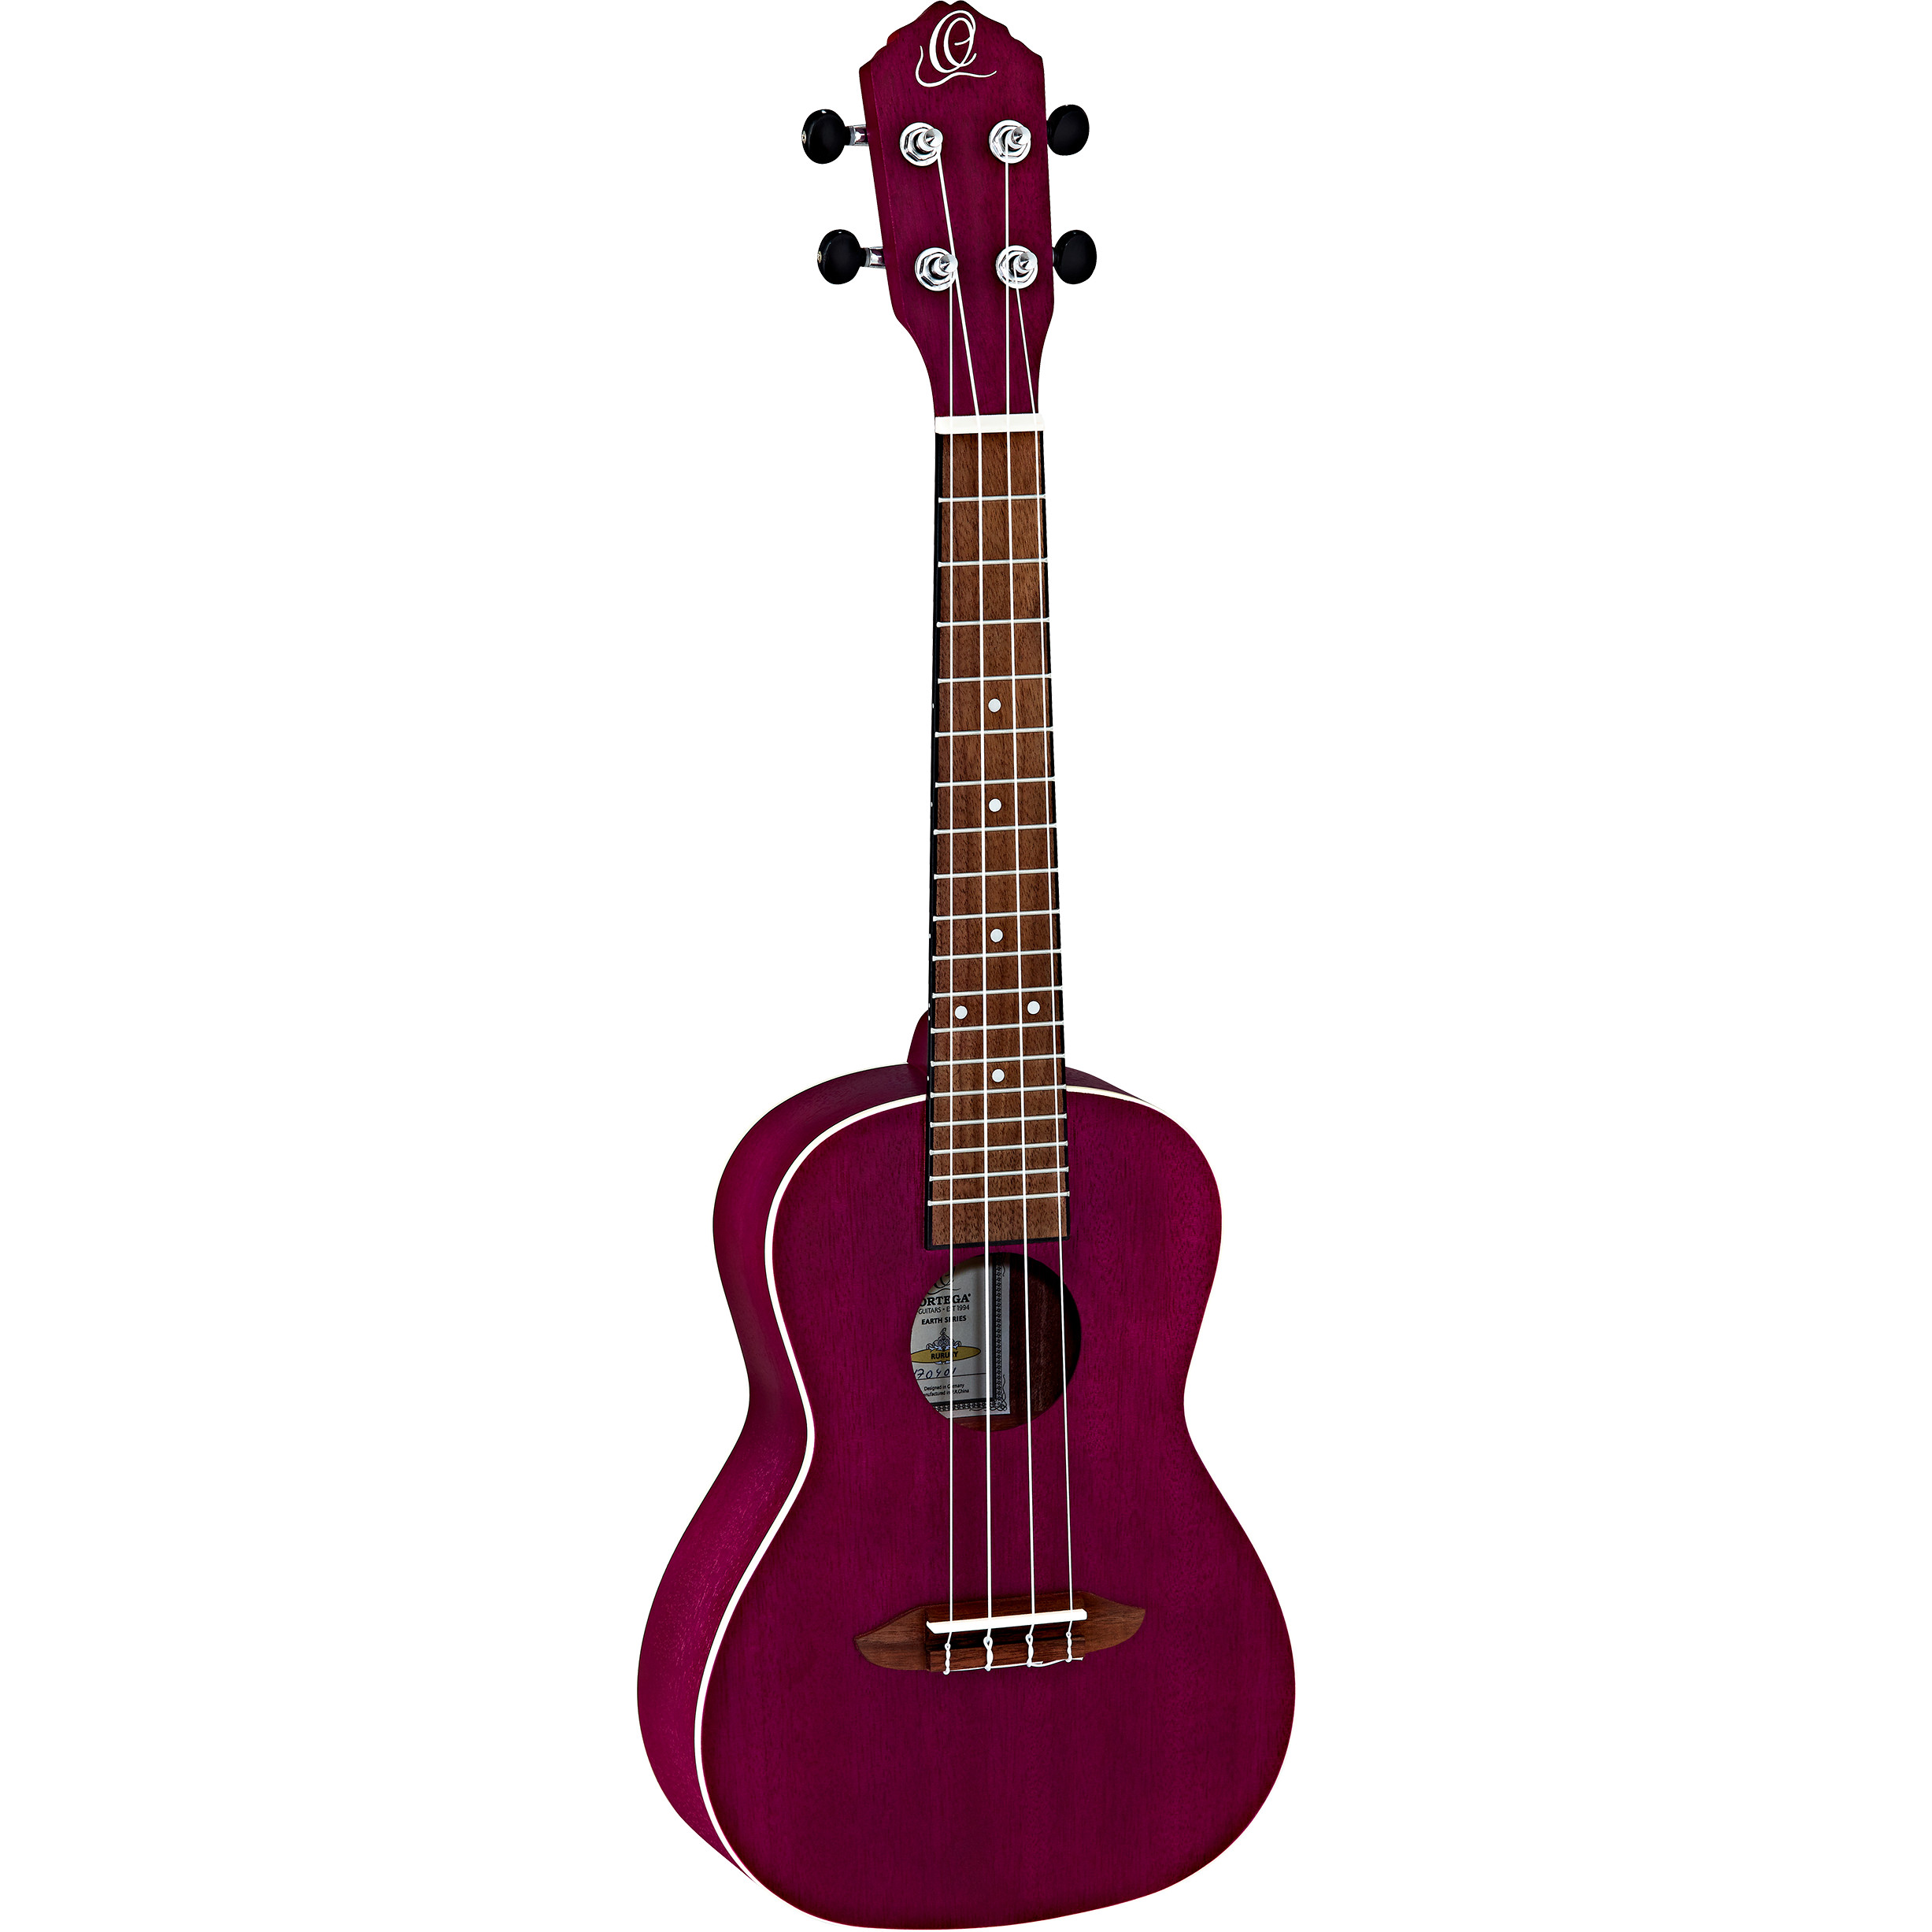 Ortega Earth Series RURUBY concert ukulele, ruby